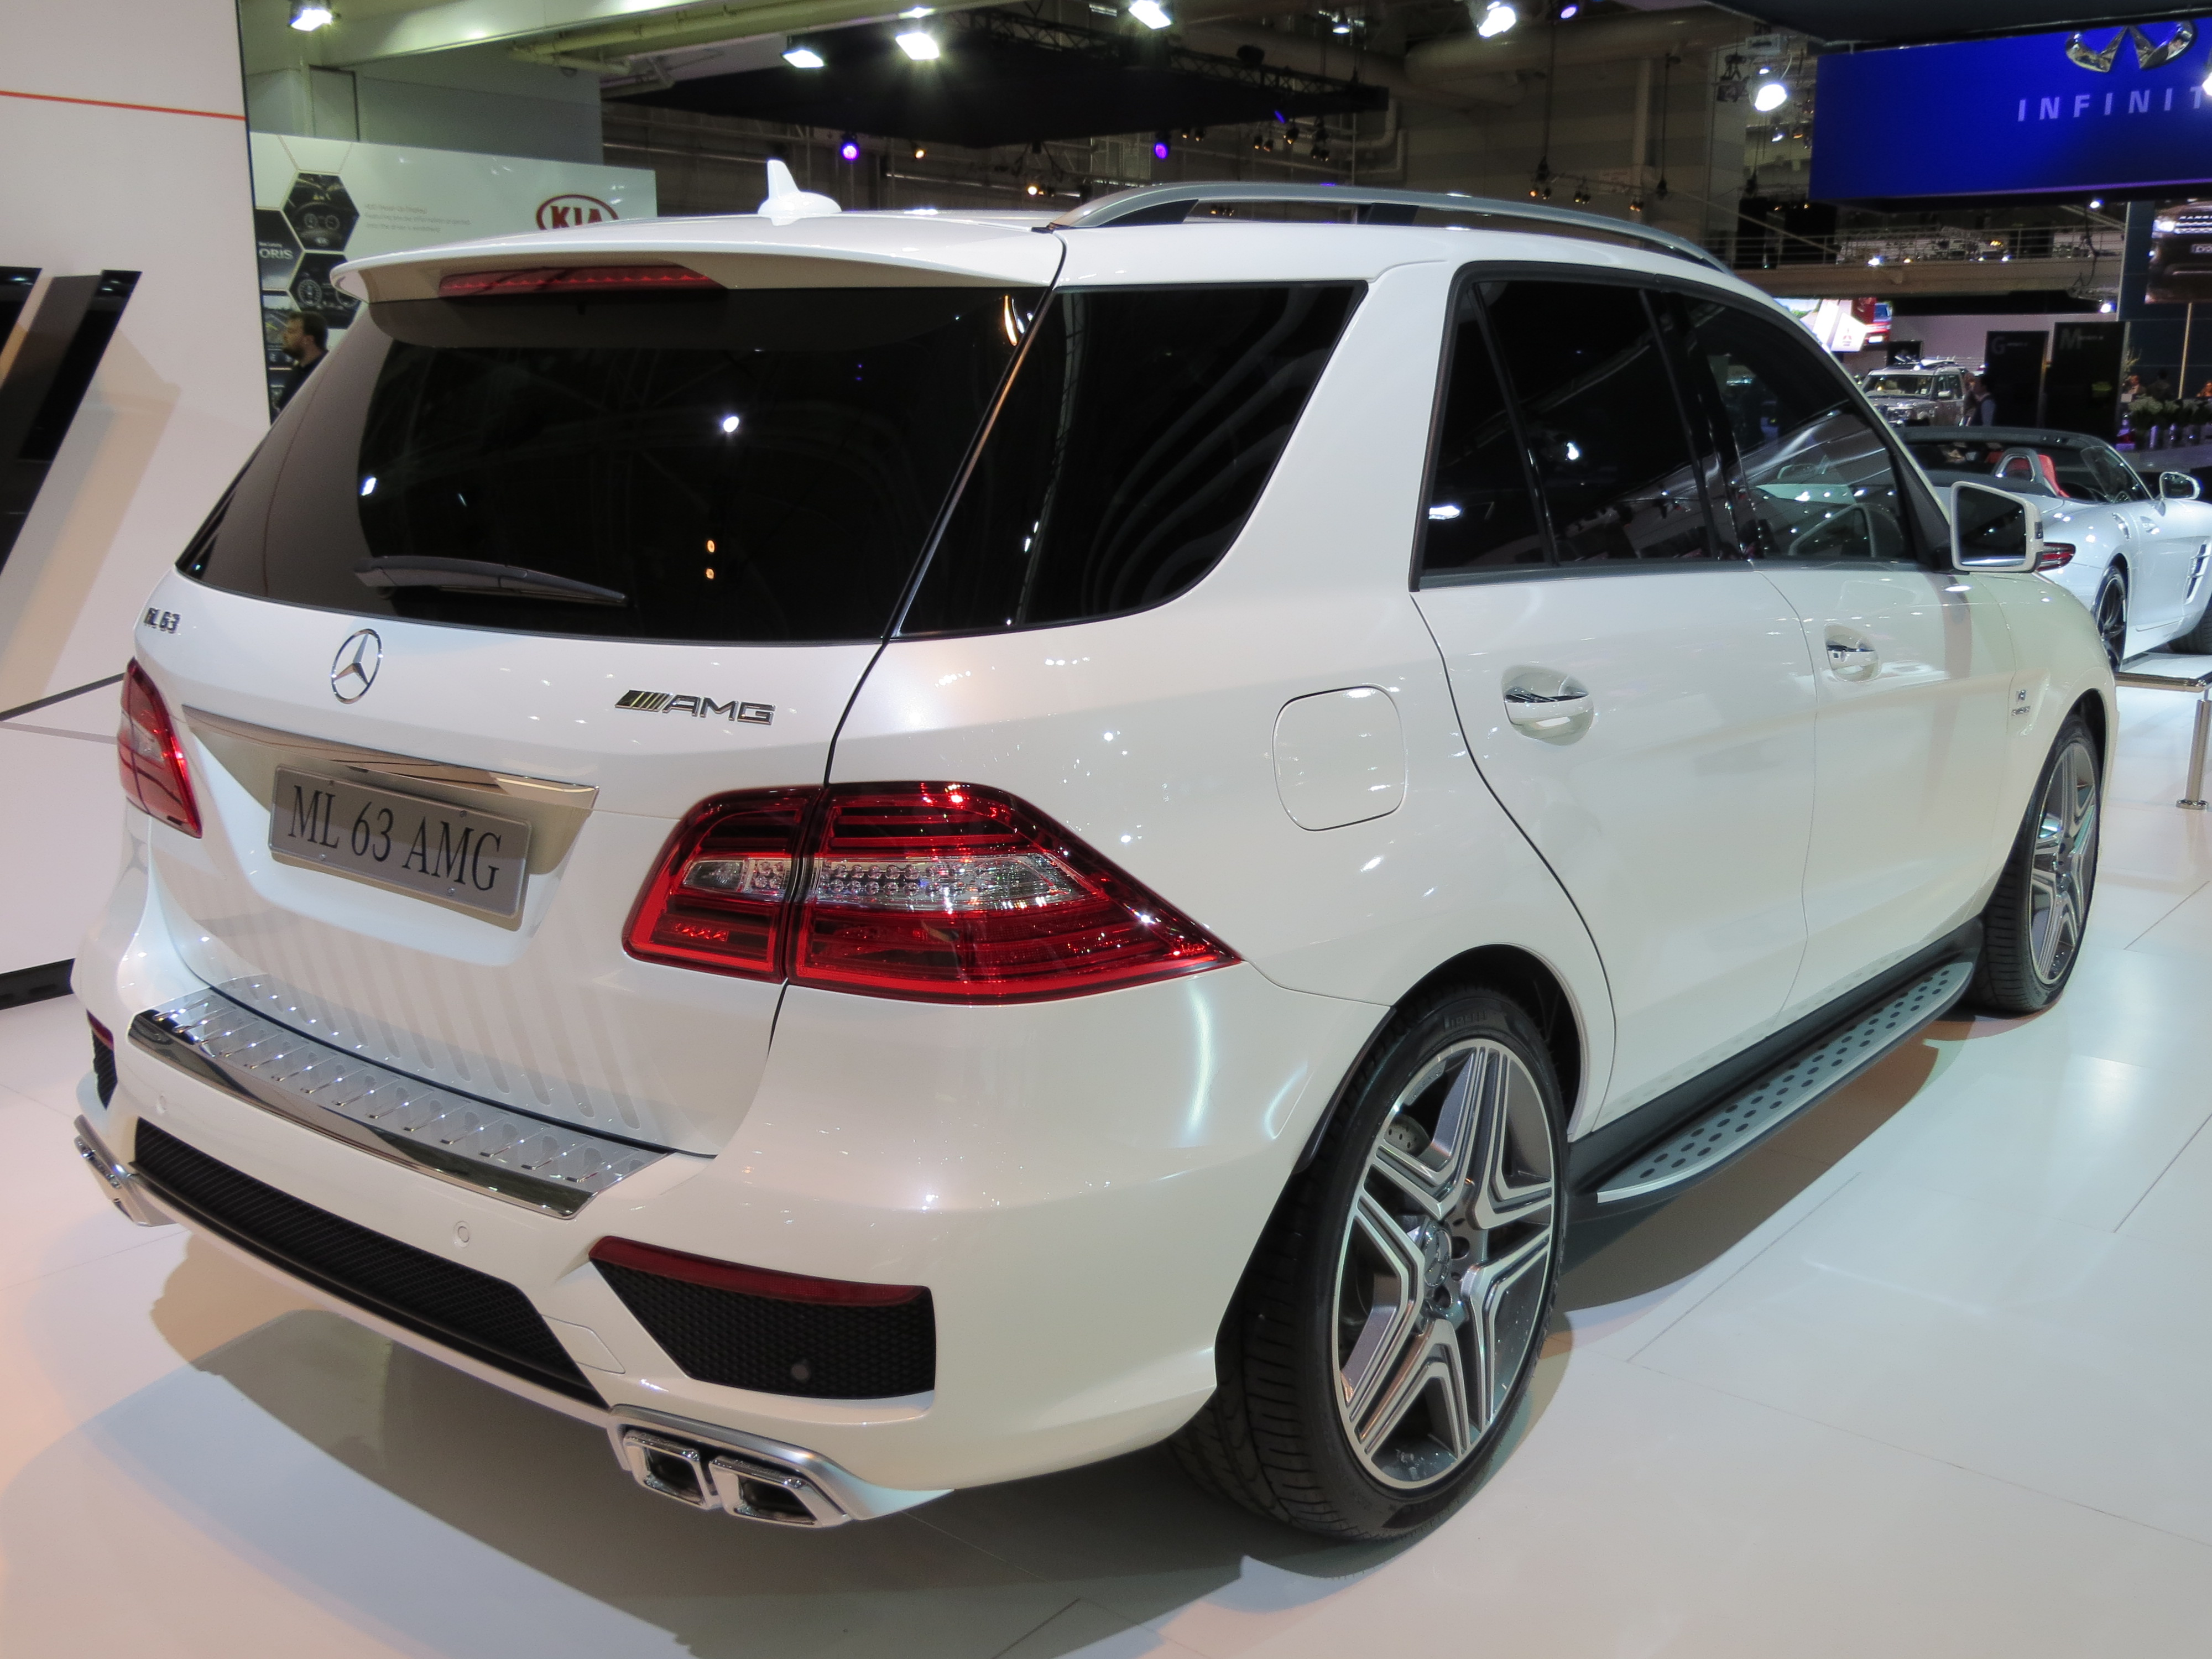 file 2012 mercedes benz ml 63 amg w 166 wagon 2012 10 26 wikipedia. Black Bedroom Furniture Sets. Home Design Ideas